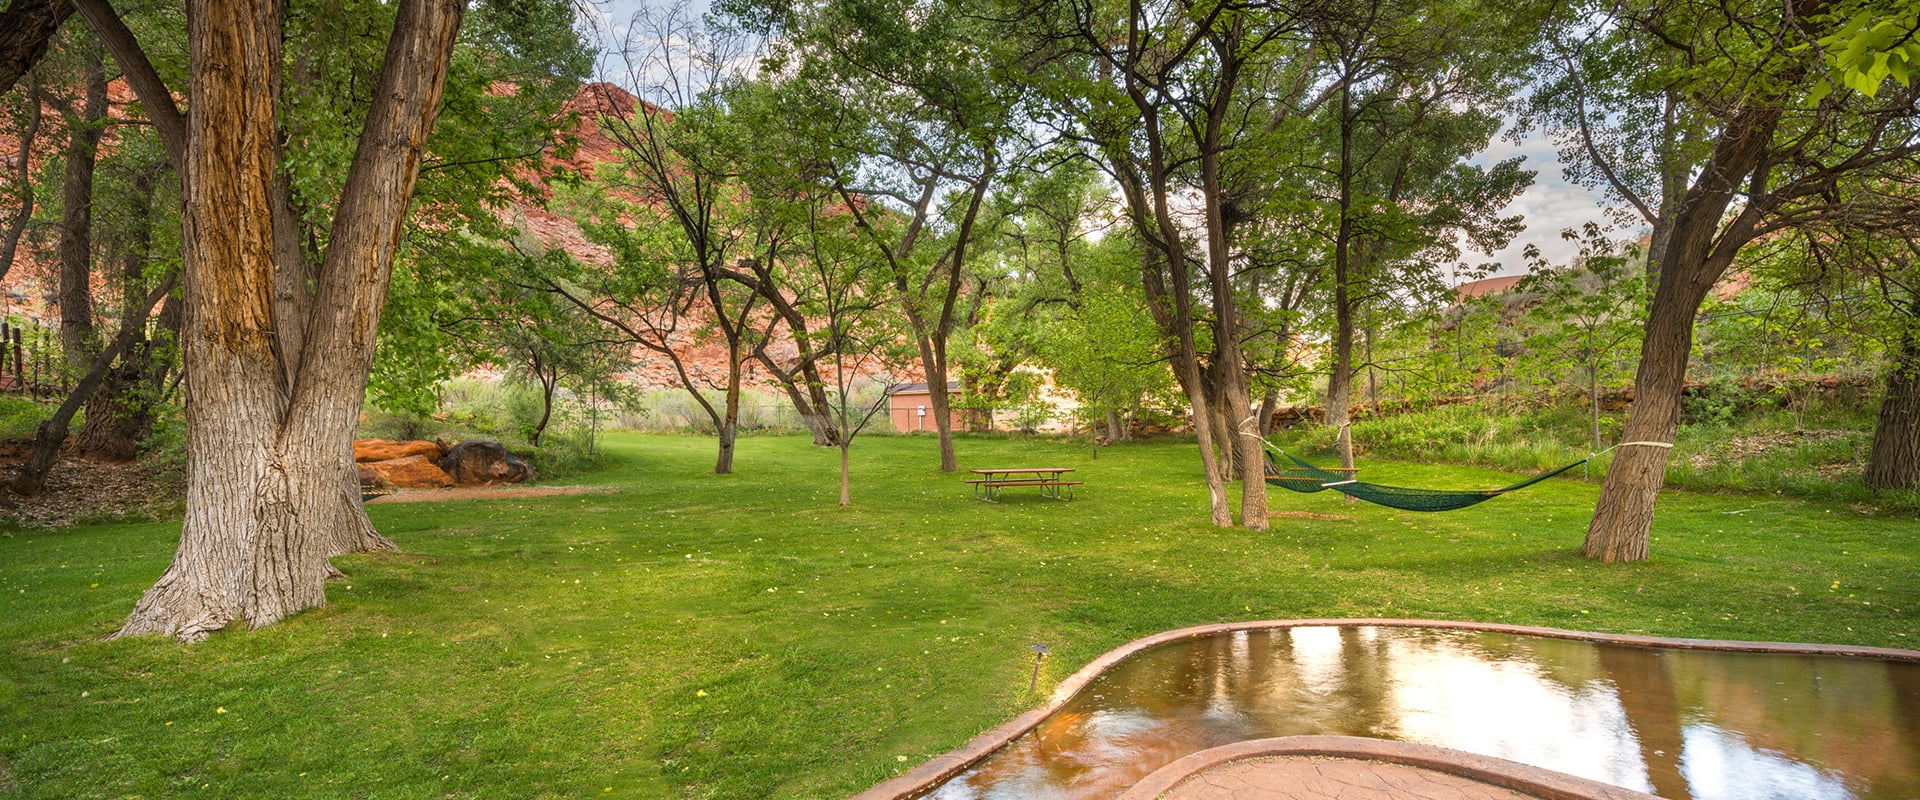 A man-made stream runs across the parkspace of Moab Springs Ranch with towering green trees, a hammock and a picnic table in the background.